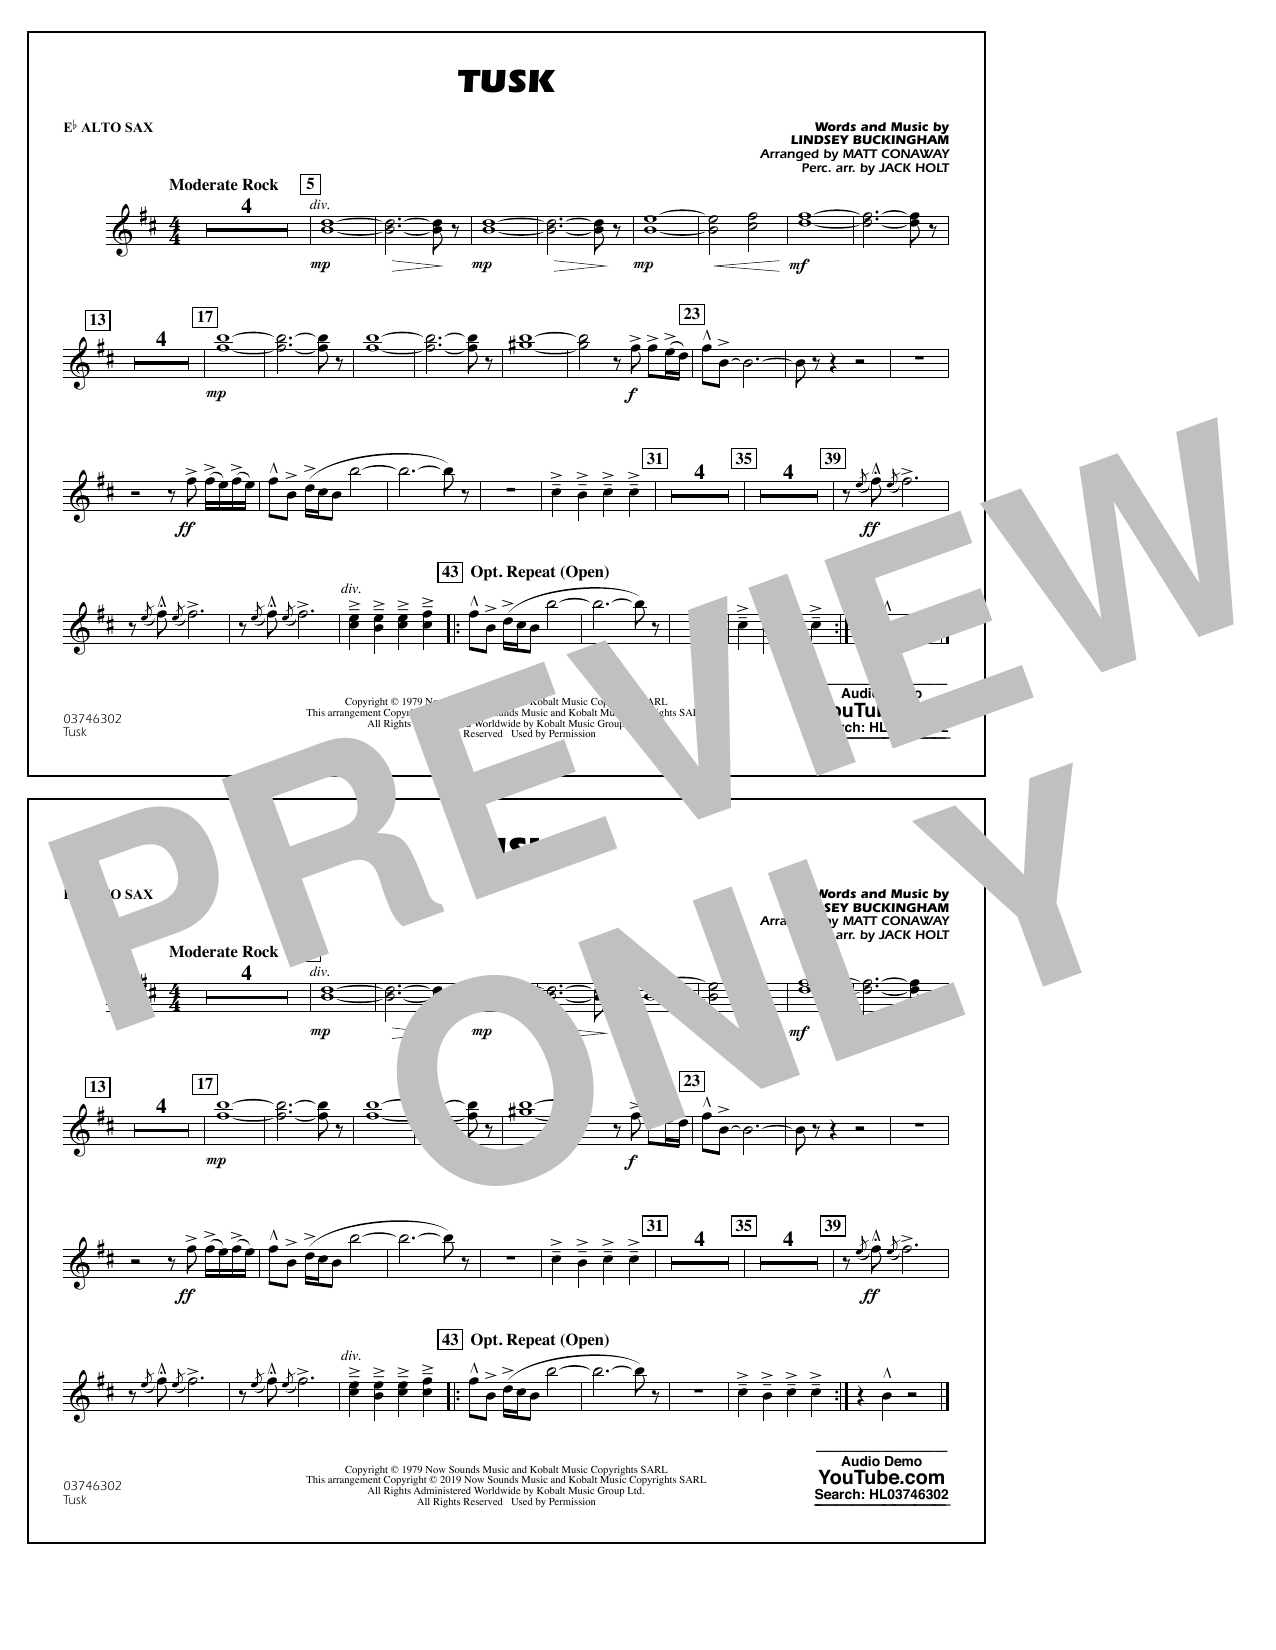 Fleetwood Mac Tusk (arr. Matt Conaway) - Eb Alto Sax sheet music preview music notes and score for Marching Band including 1 page(s)